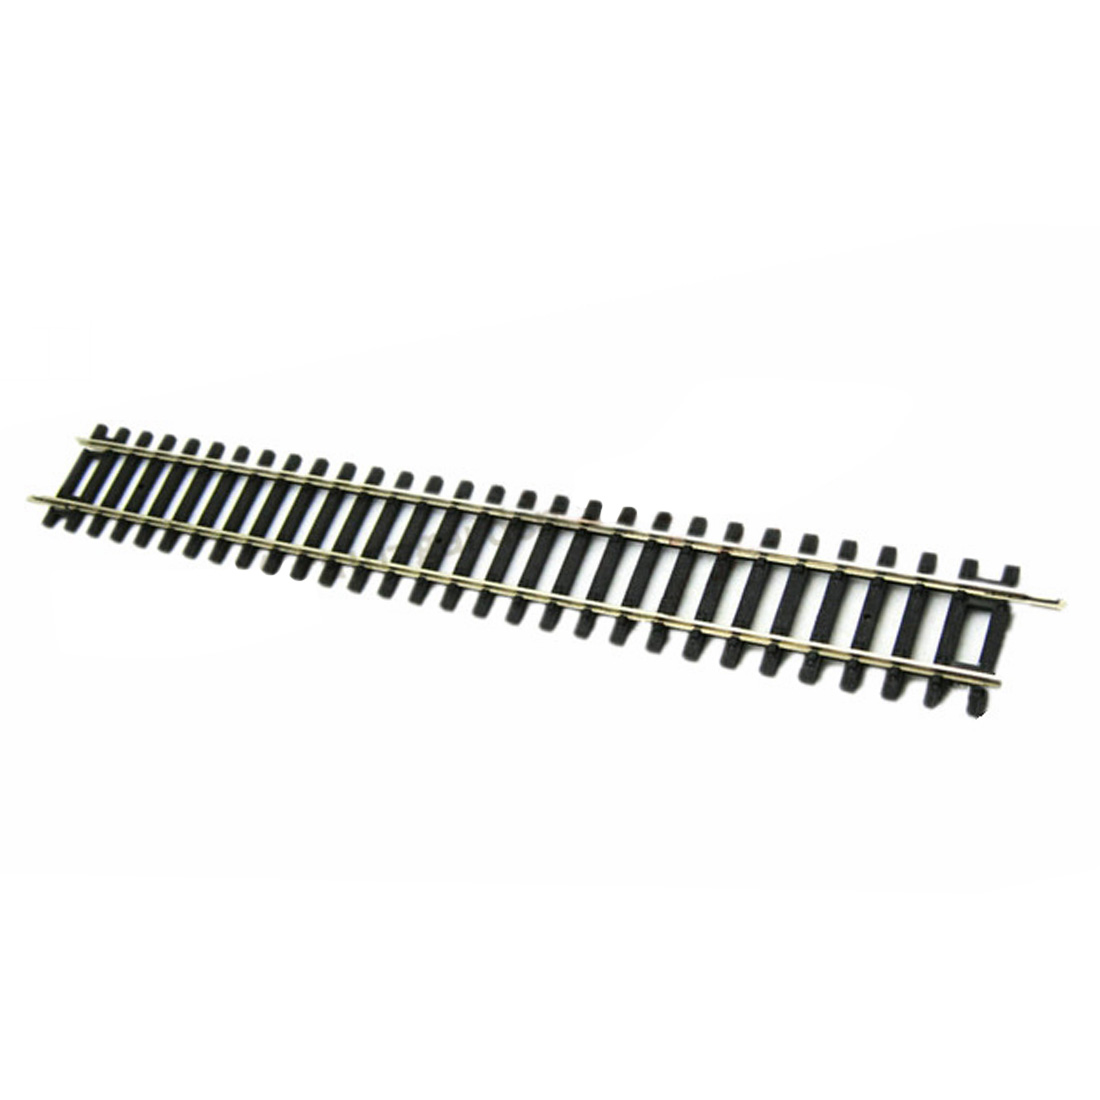 1:87 239mm G239 Train Track Straight Track With/Without Roadbed Bolt Set For Train Model Model Building Kits - Black